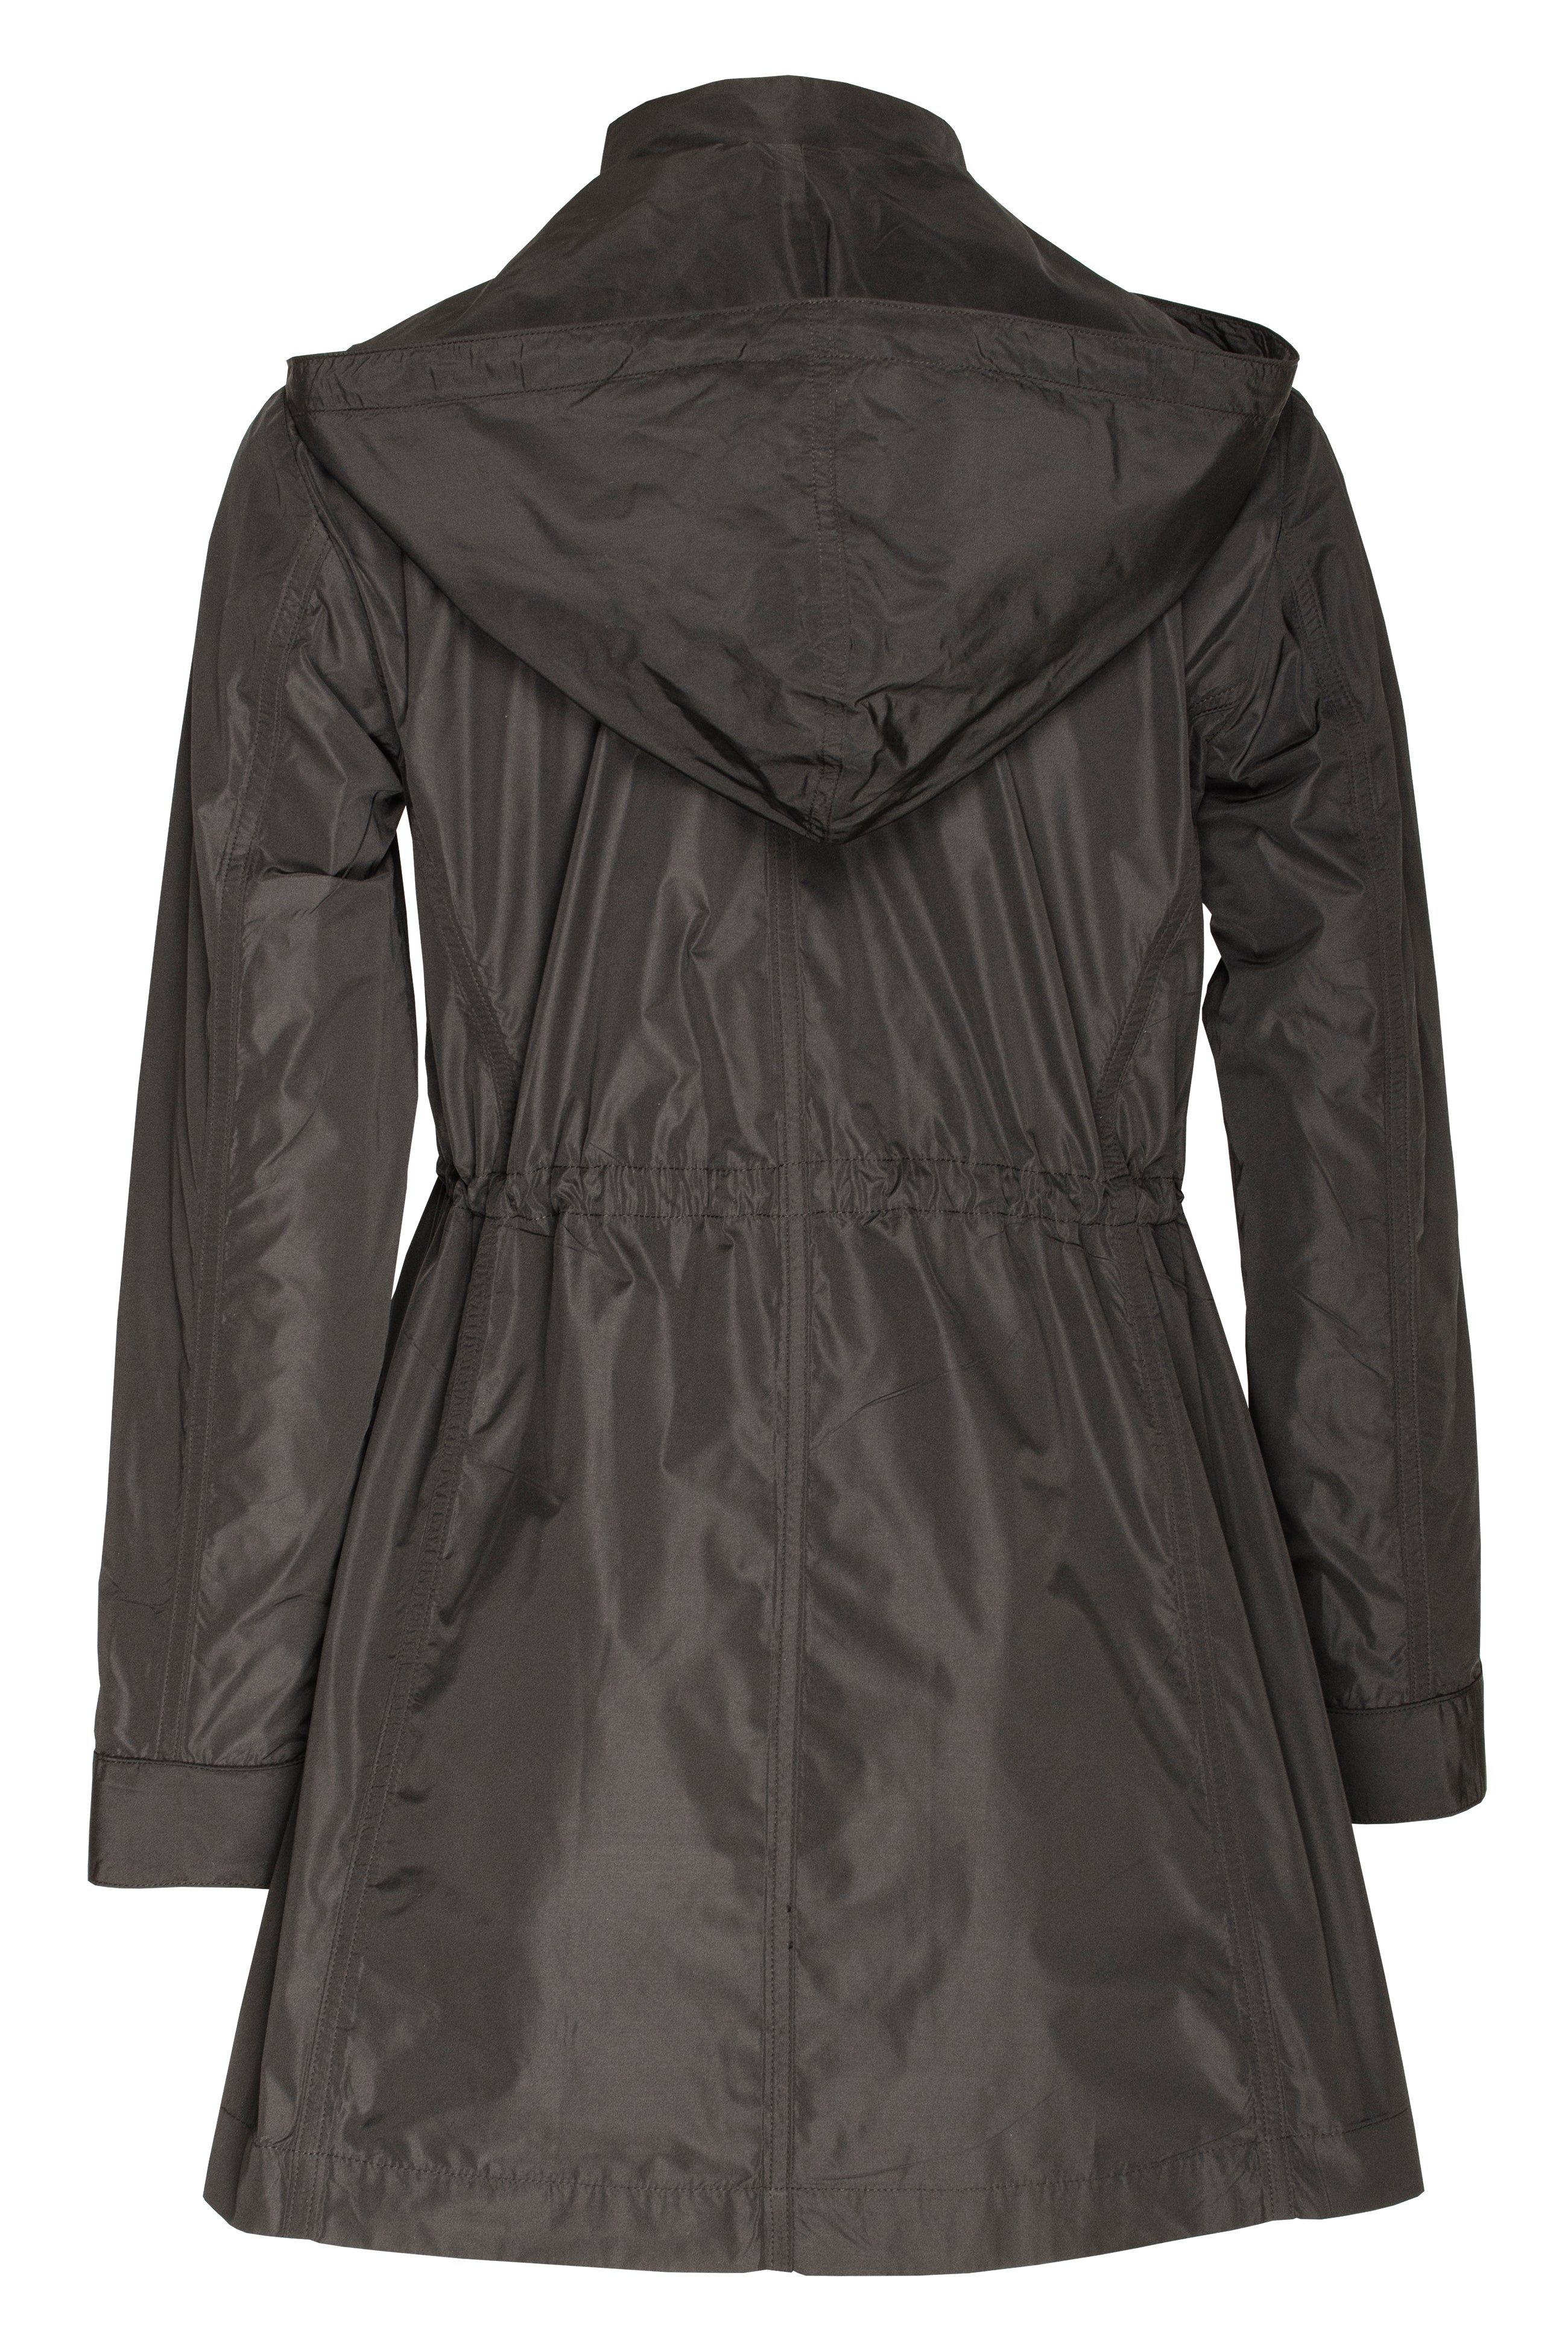 Black Detachable Hood Trench 6256